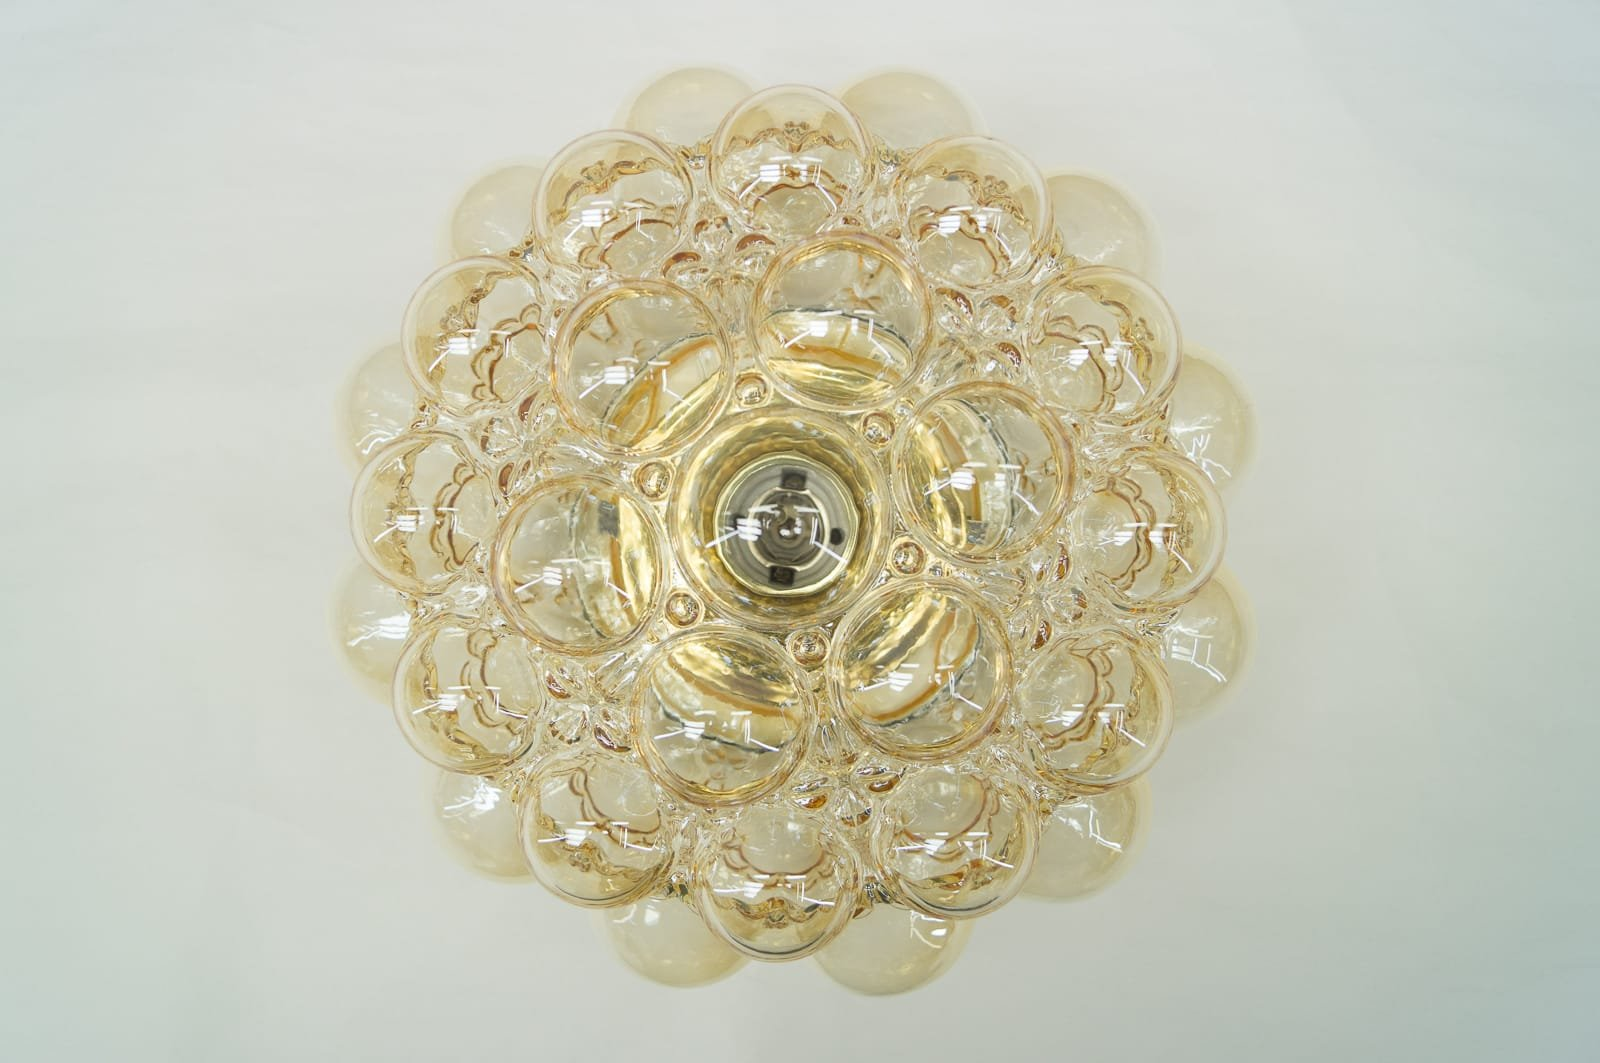 Contemporary Glass Bubble Wall Decor Image Collection - Art & Wall ...